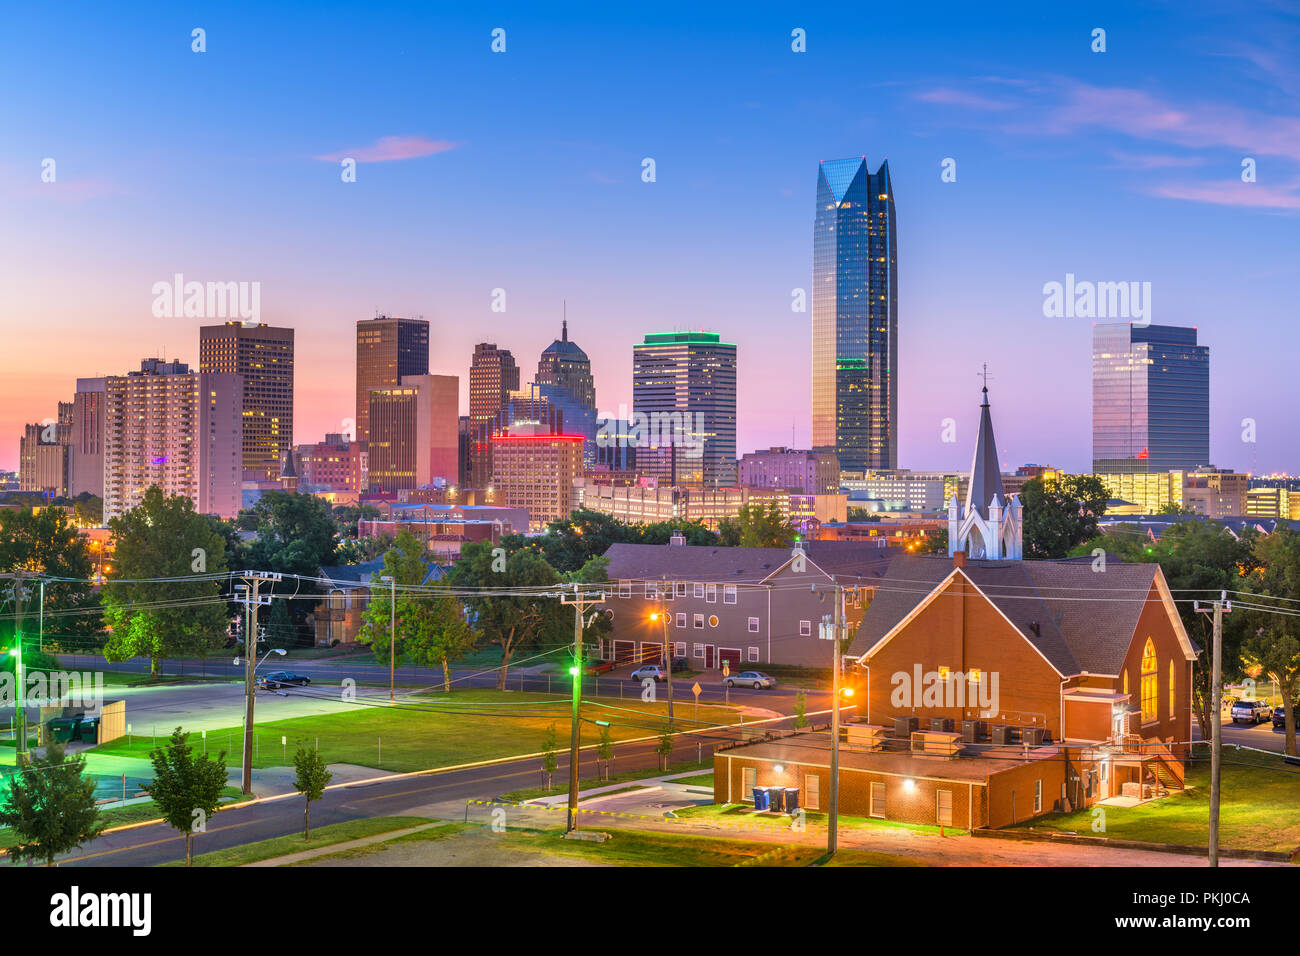 Oklahoma City, Oklahoma, USA downtown skyline at twilight. - Stock Image